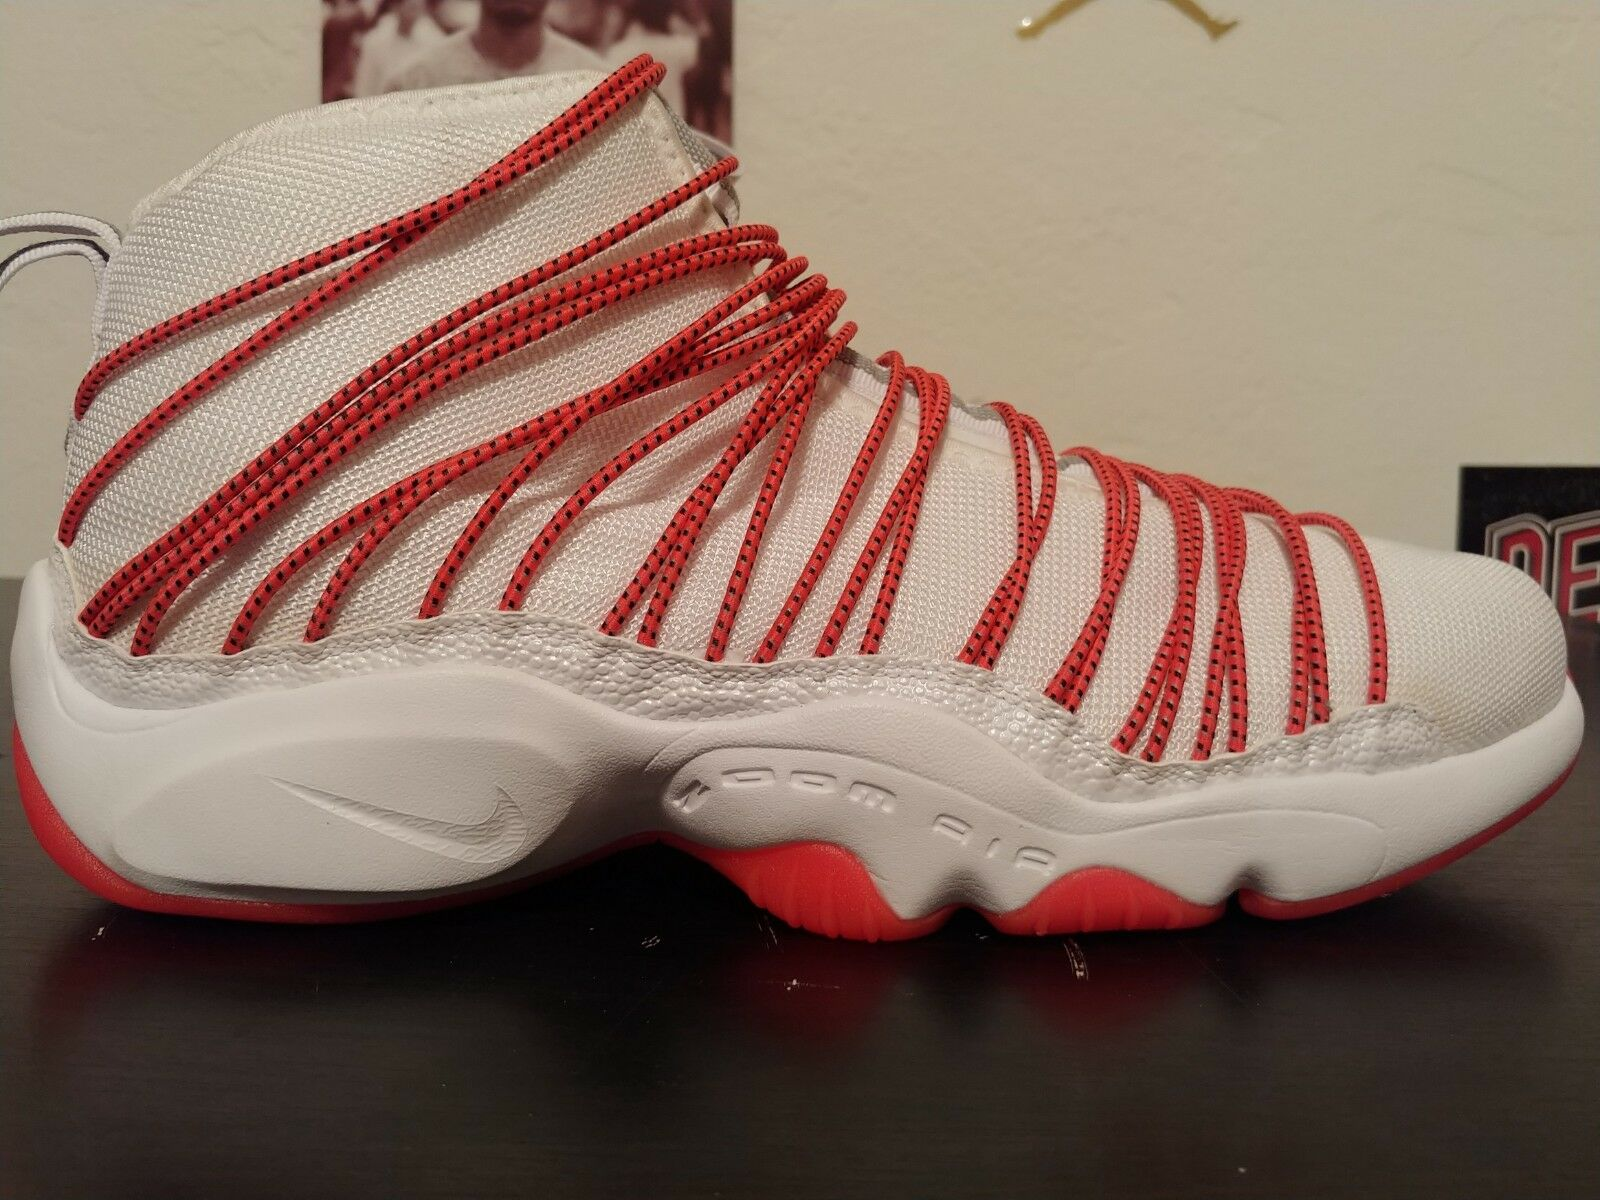 Nike Zoom Cabos Men's Basketball shoes Size 8 US 845058-100